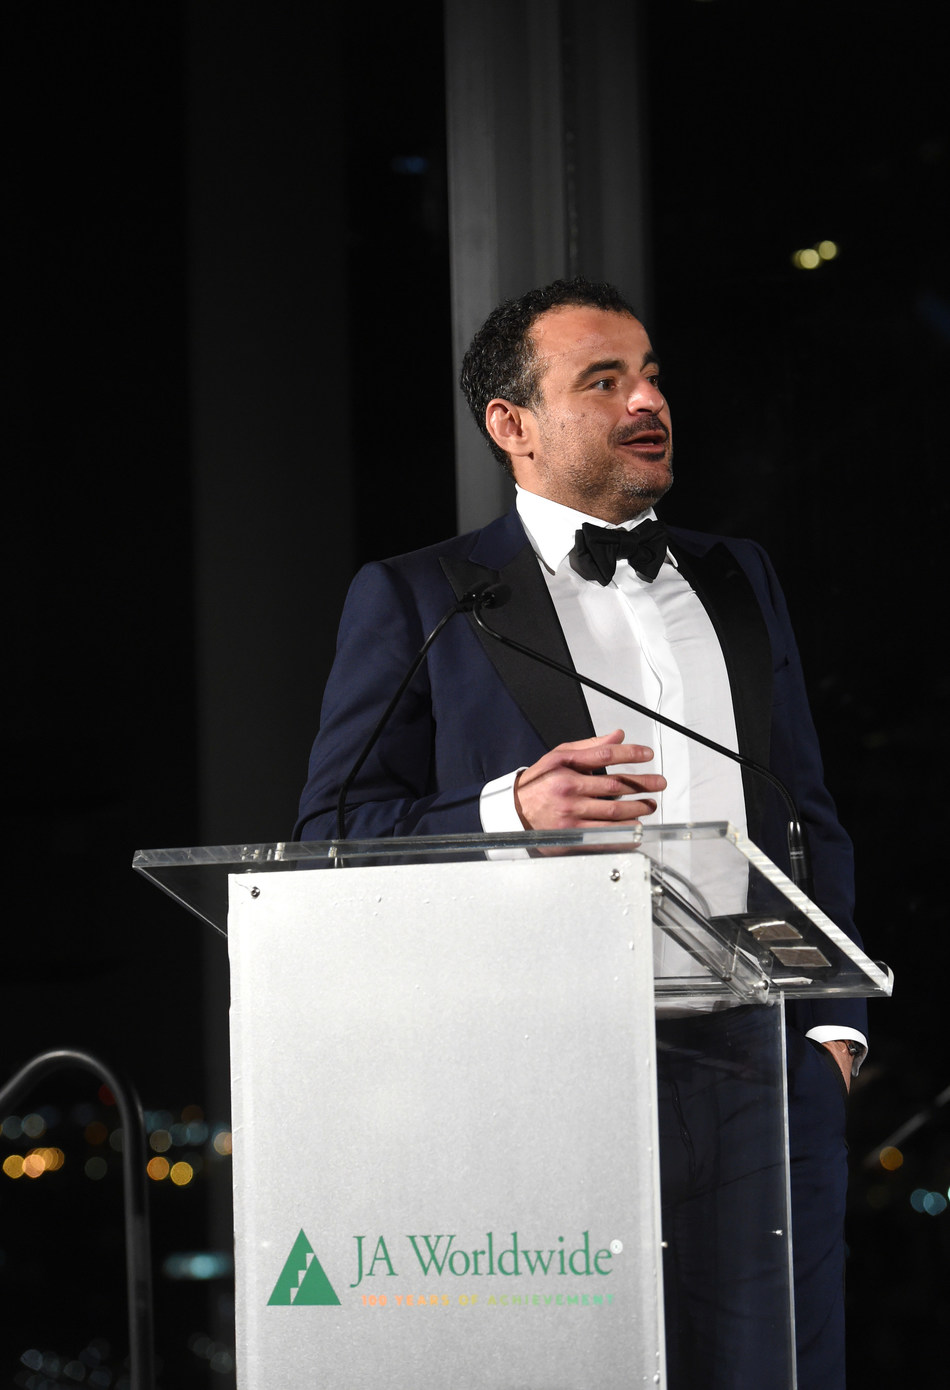 Omar K. Alghanim delivers remarks at the JA Worldwide Centennial Gala, May 2, 2019.